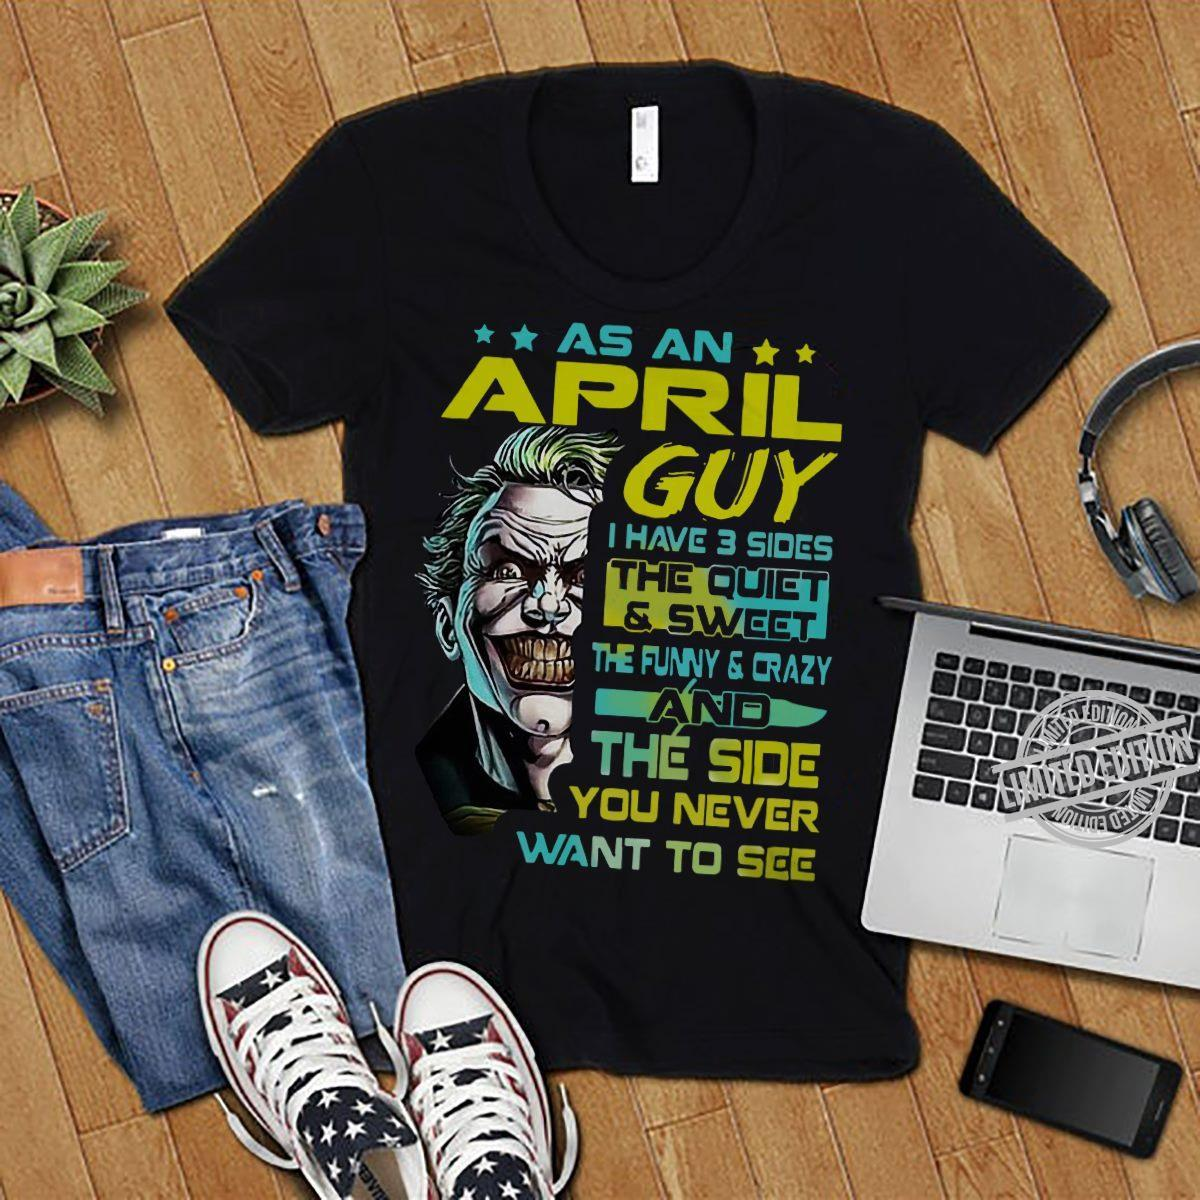 As An April Guy I Hvae 3 Sides The Quiet & Sweet The Funny & Crazy And The Side You Never Want To See Shirt